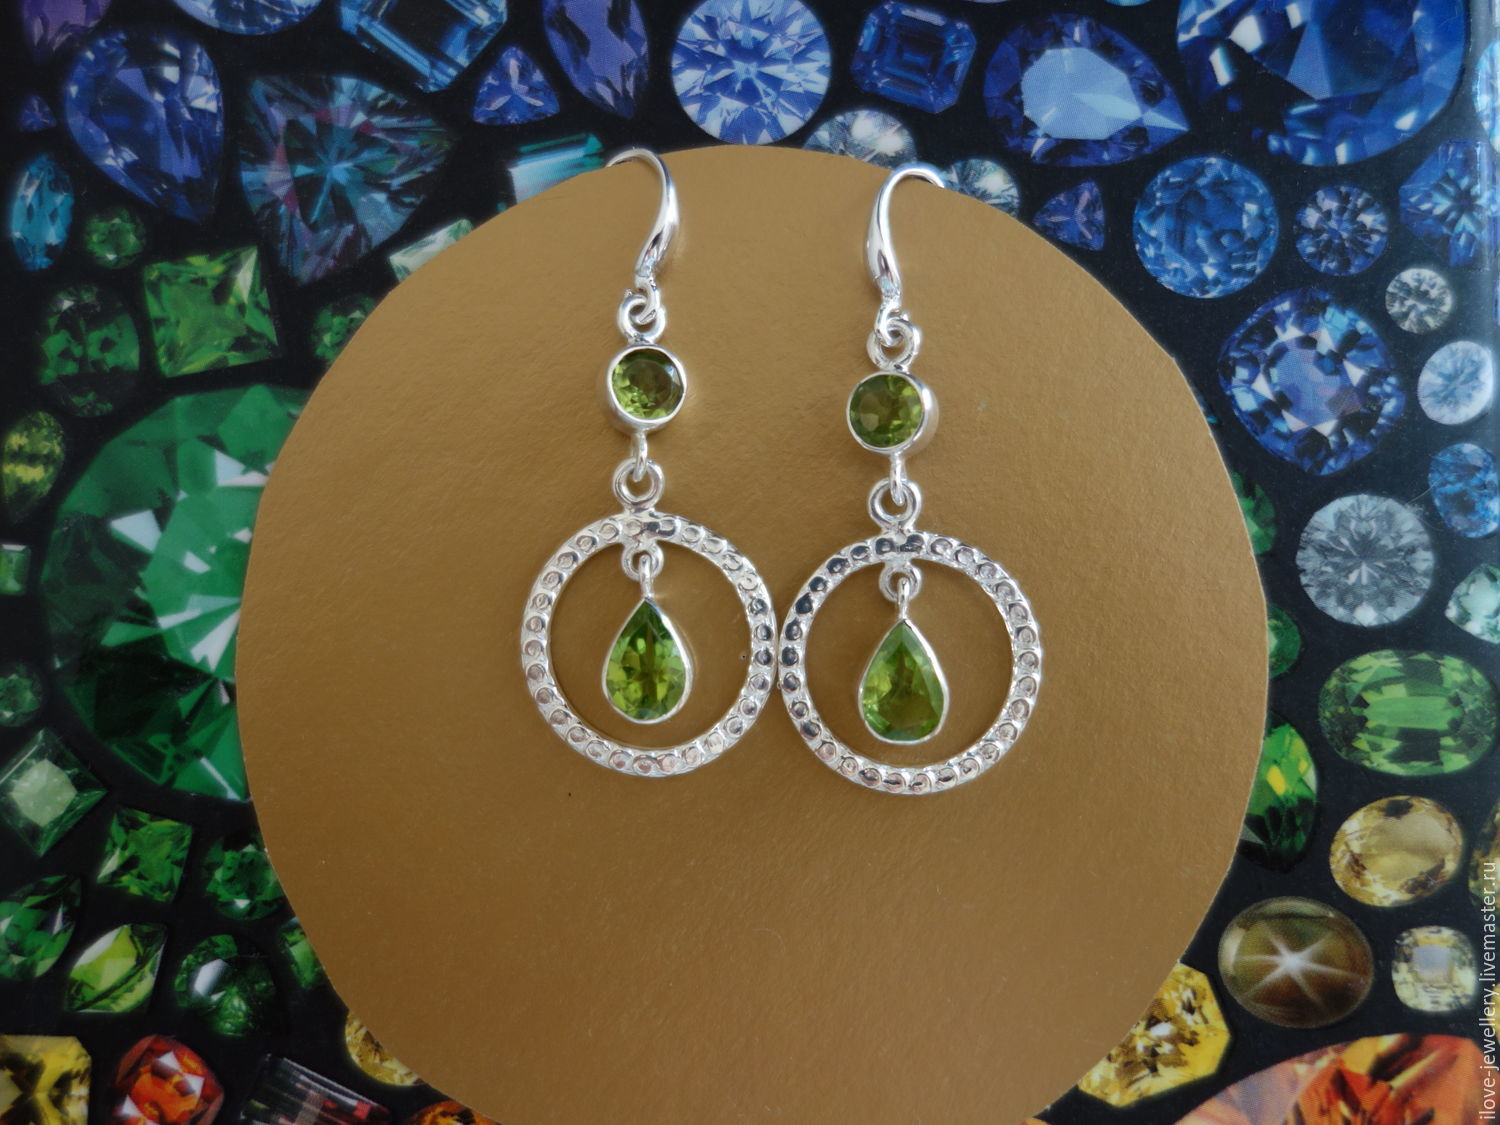 'Madhuri-stylish silver earrings with natural peridots, Earrings, Moscow,  Фото №1